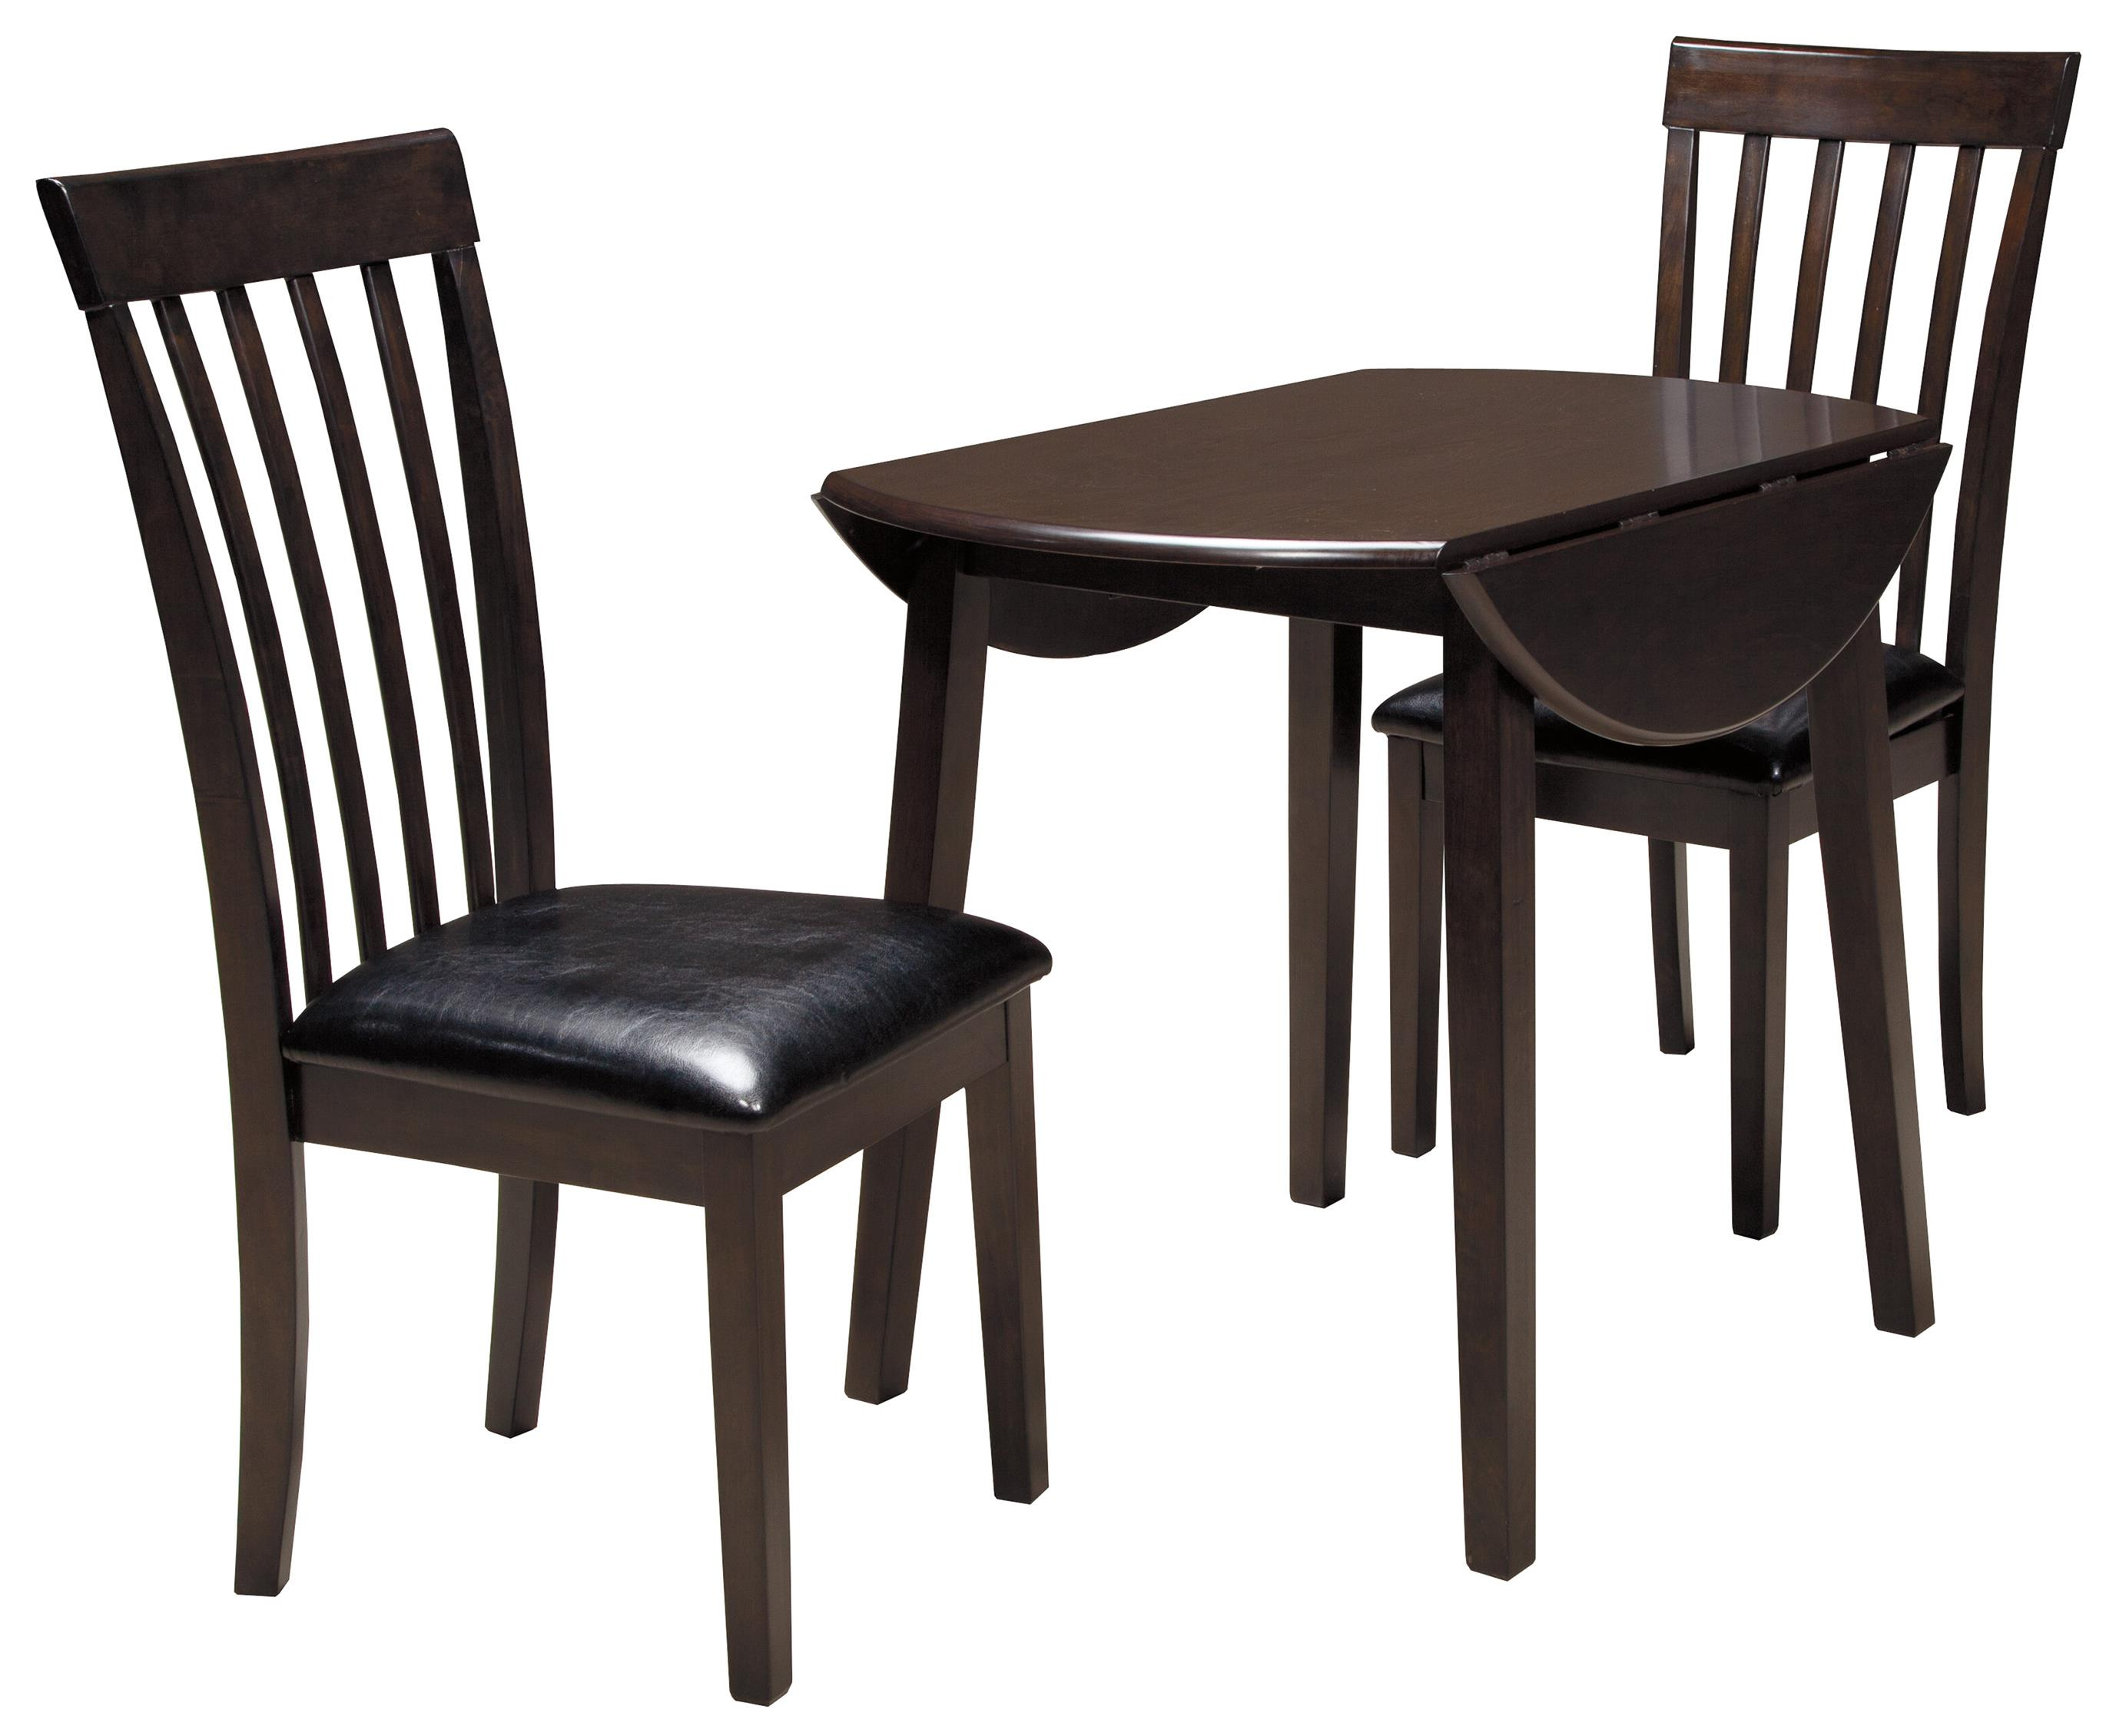 3 Piece Round Drop Leaf Table Set By Signature Design By